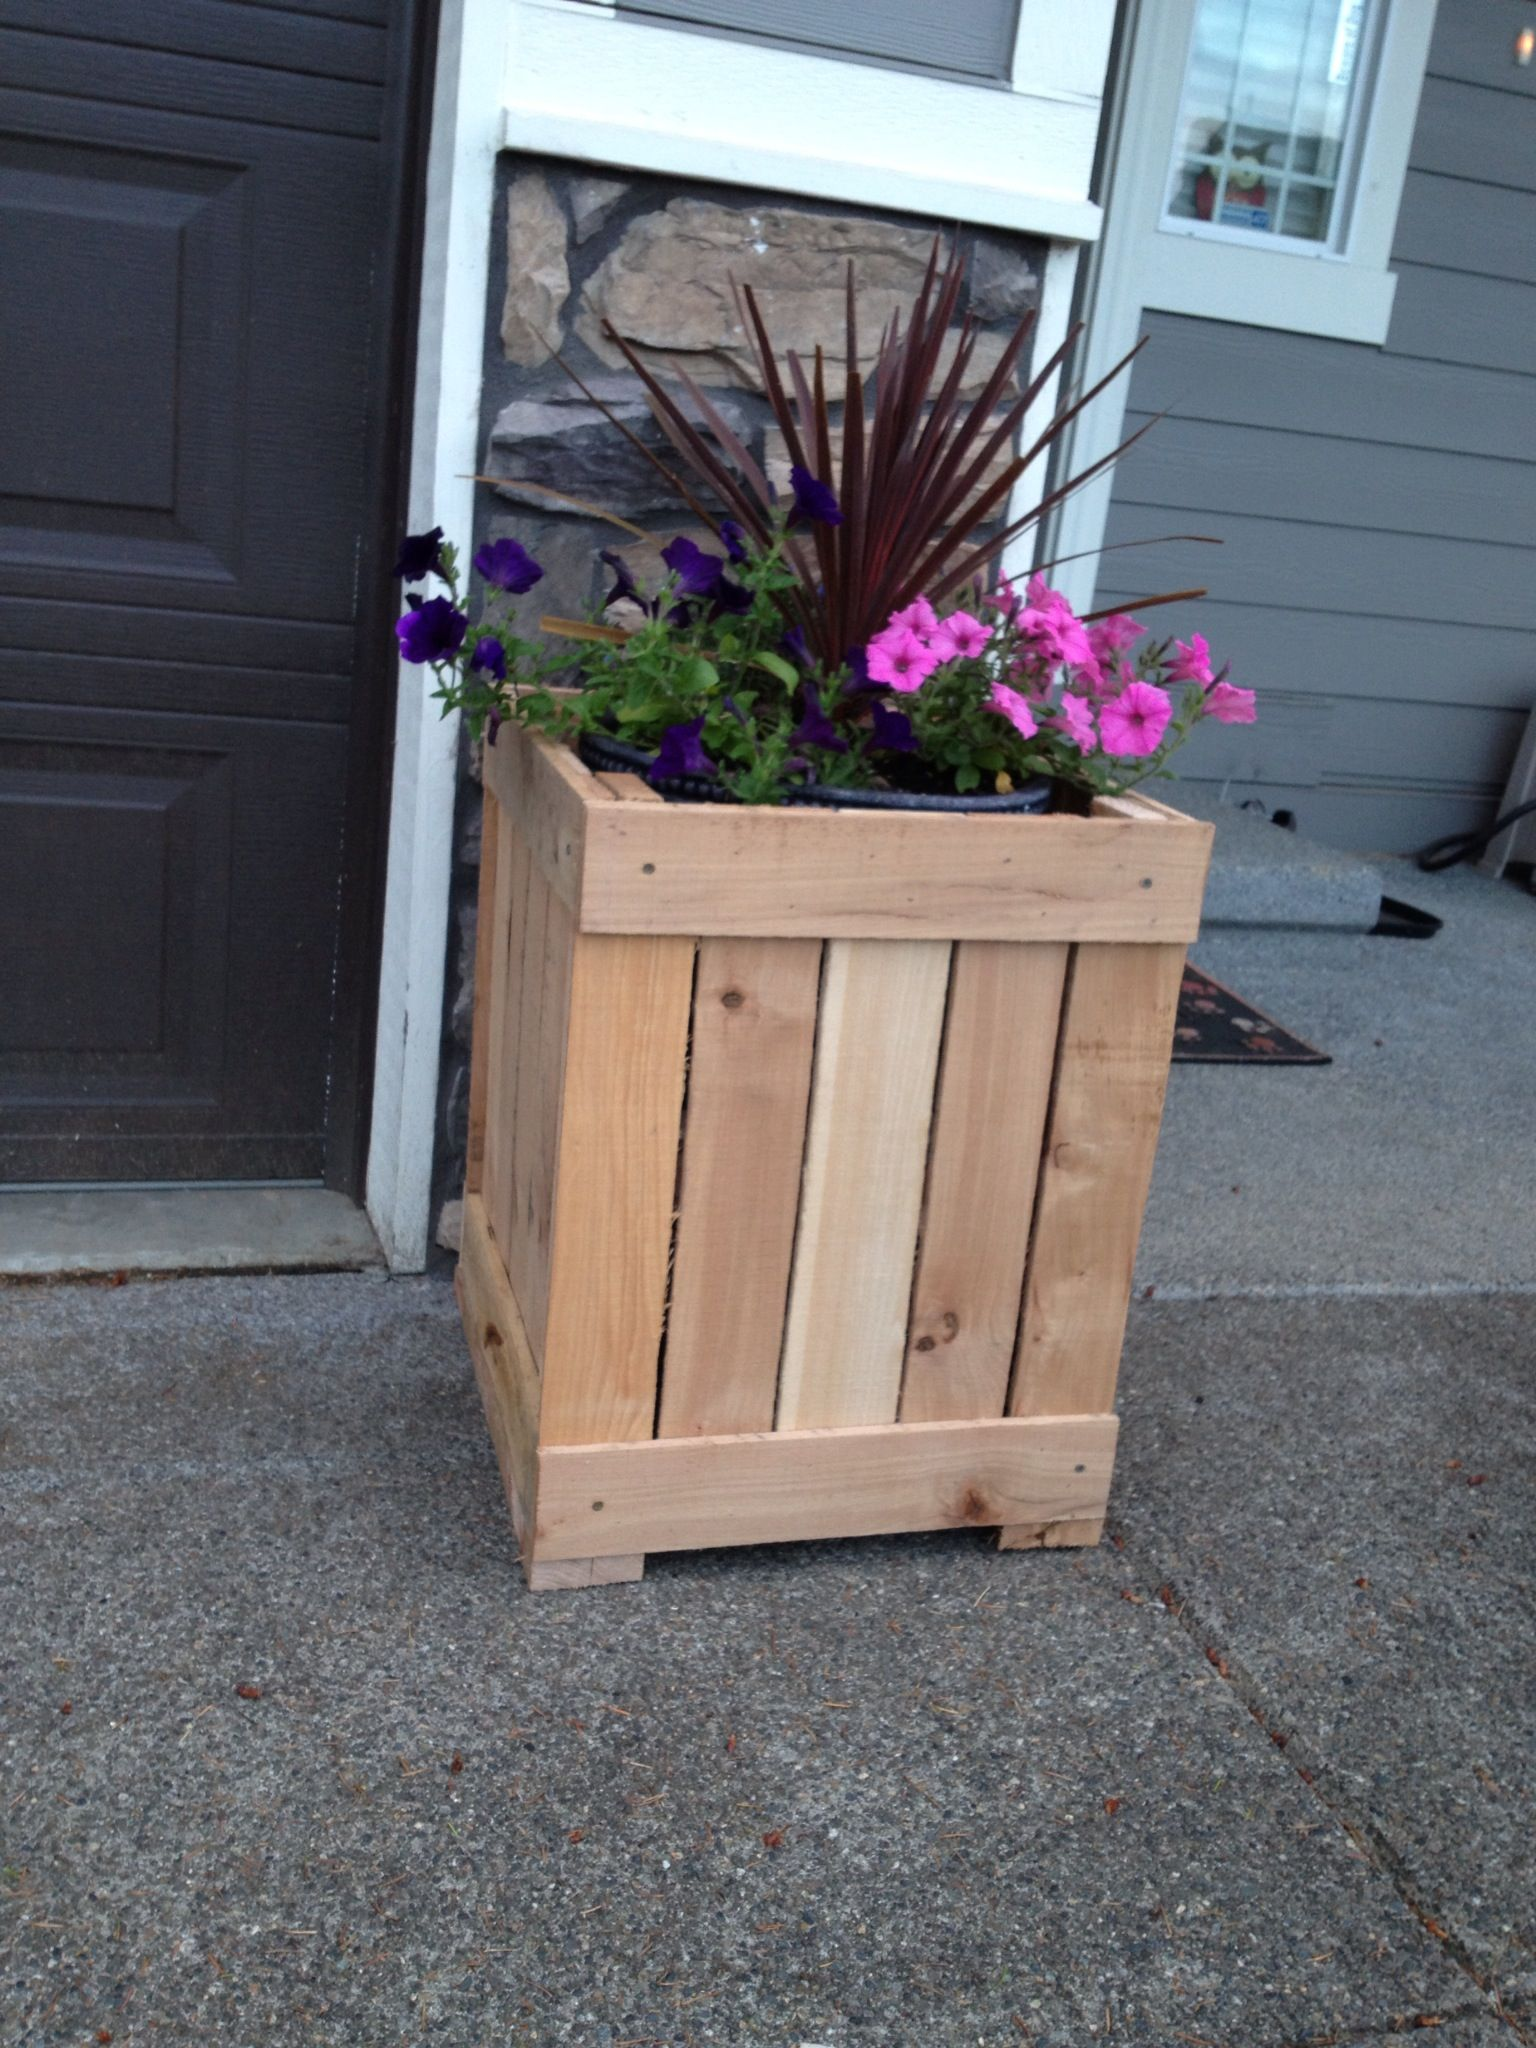 Diy Planter Box From Pallets Unfinished Planter Box Made Out Of Pallets My Completed